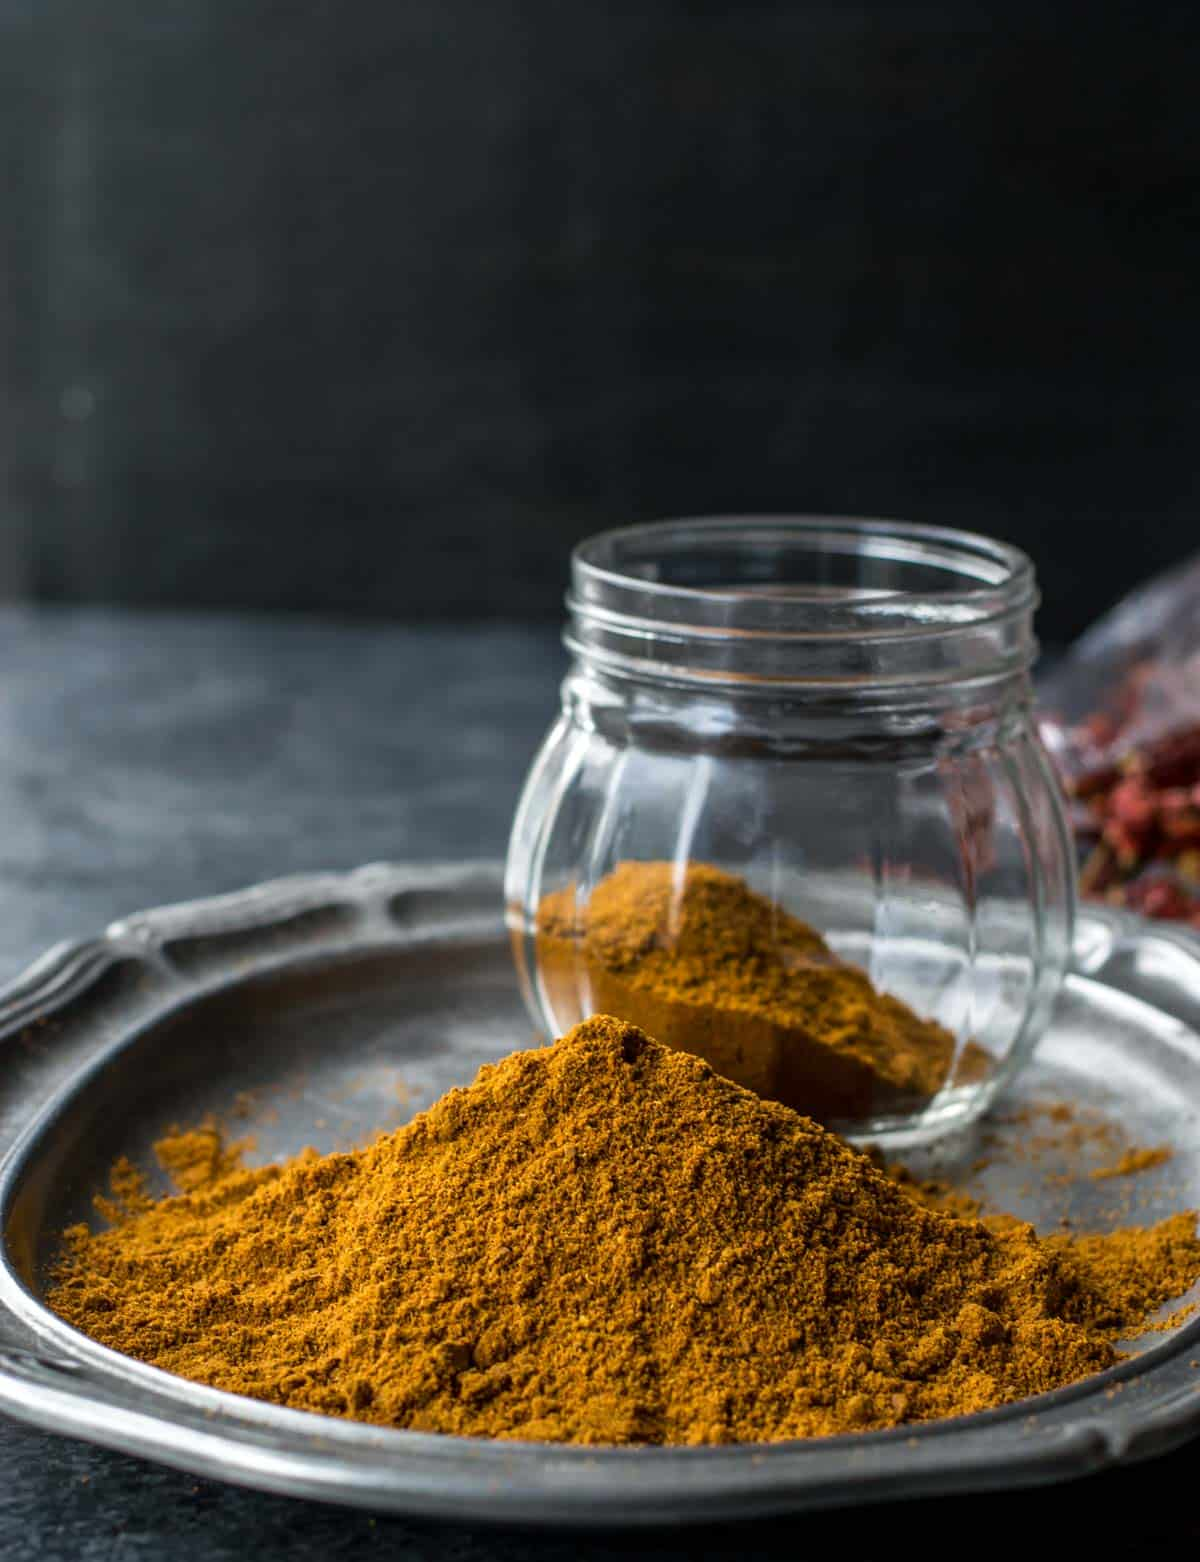 Sambar powder is the quintessential spice mix you will find in most south Indian homes. This aromatic spice blend transforms ordinary lentil-vegetable curries into delicious, wholesome stews. Make them at home today.